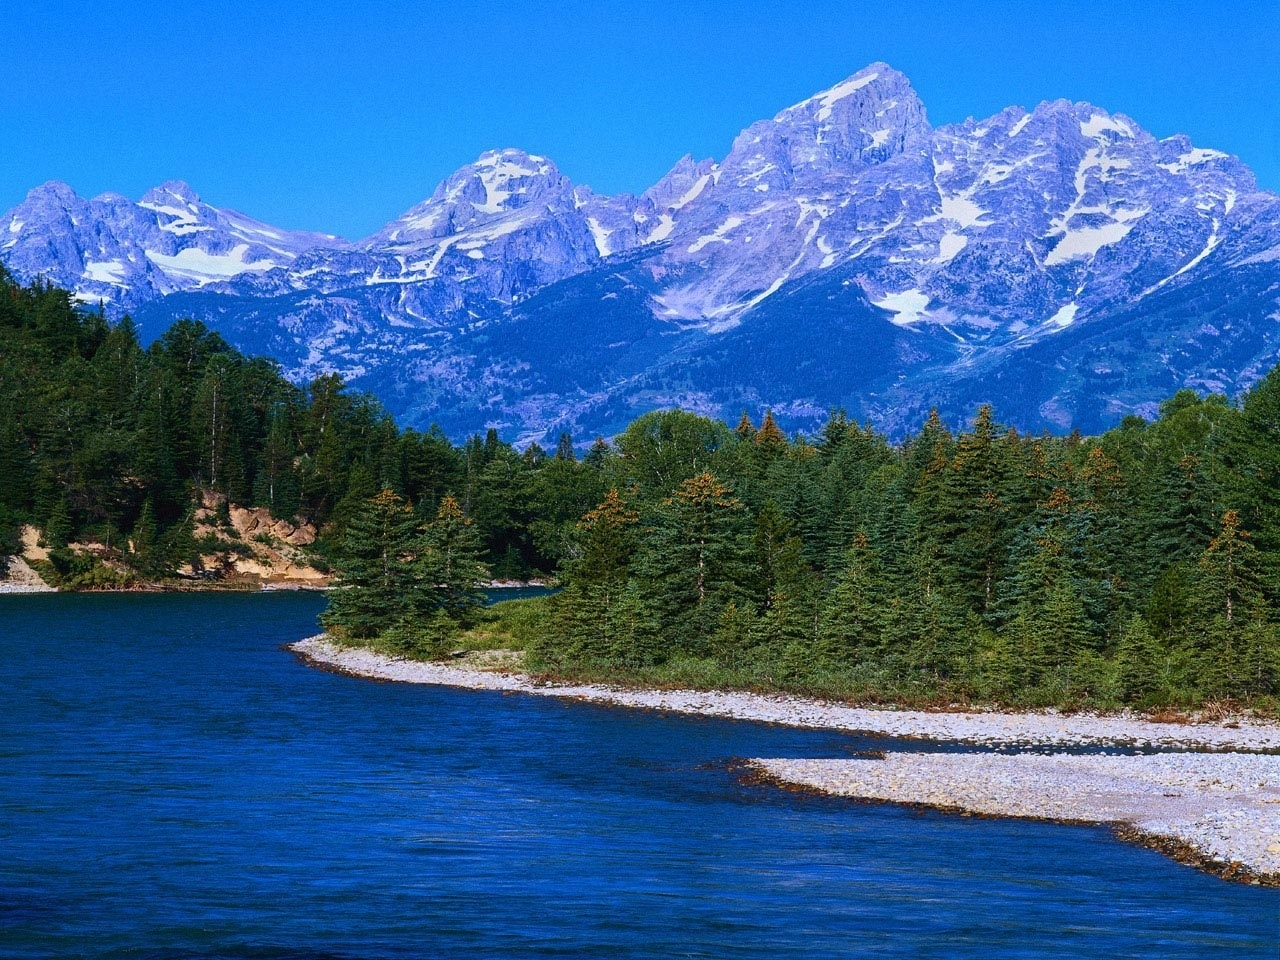 49503 download wallpaper Landscape, Nature, Rivers, Mountains screensavers and pictures for free